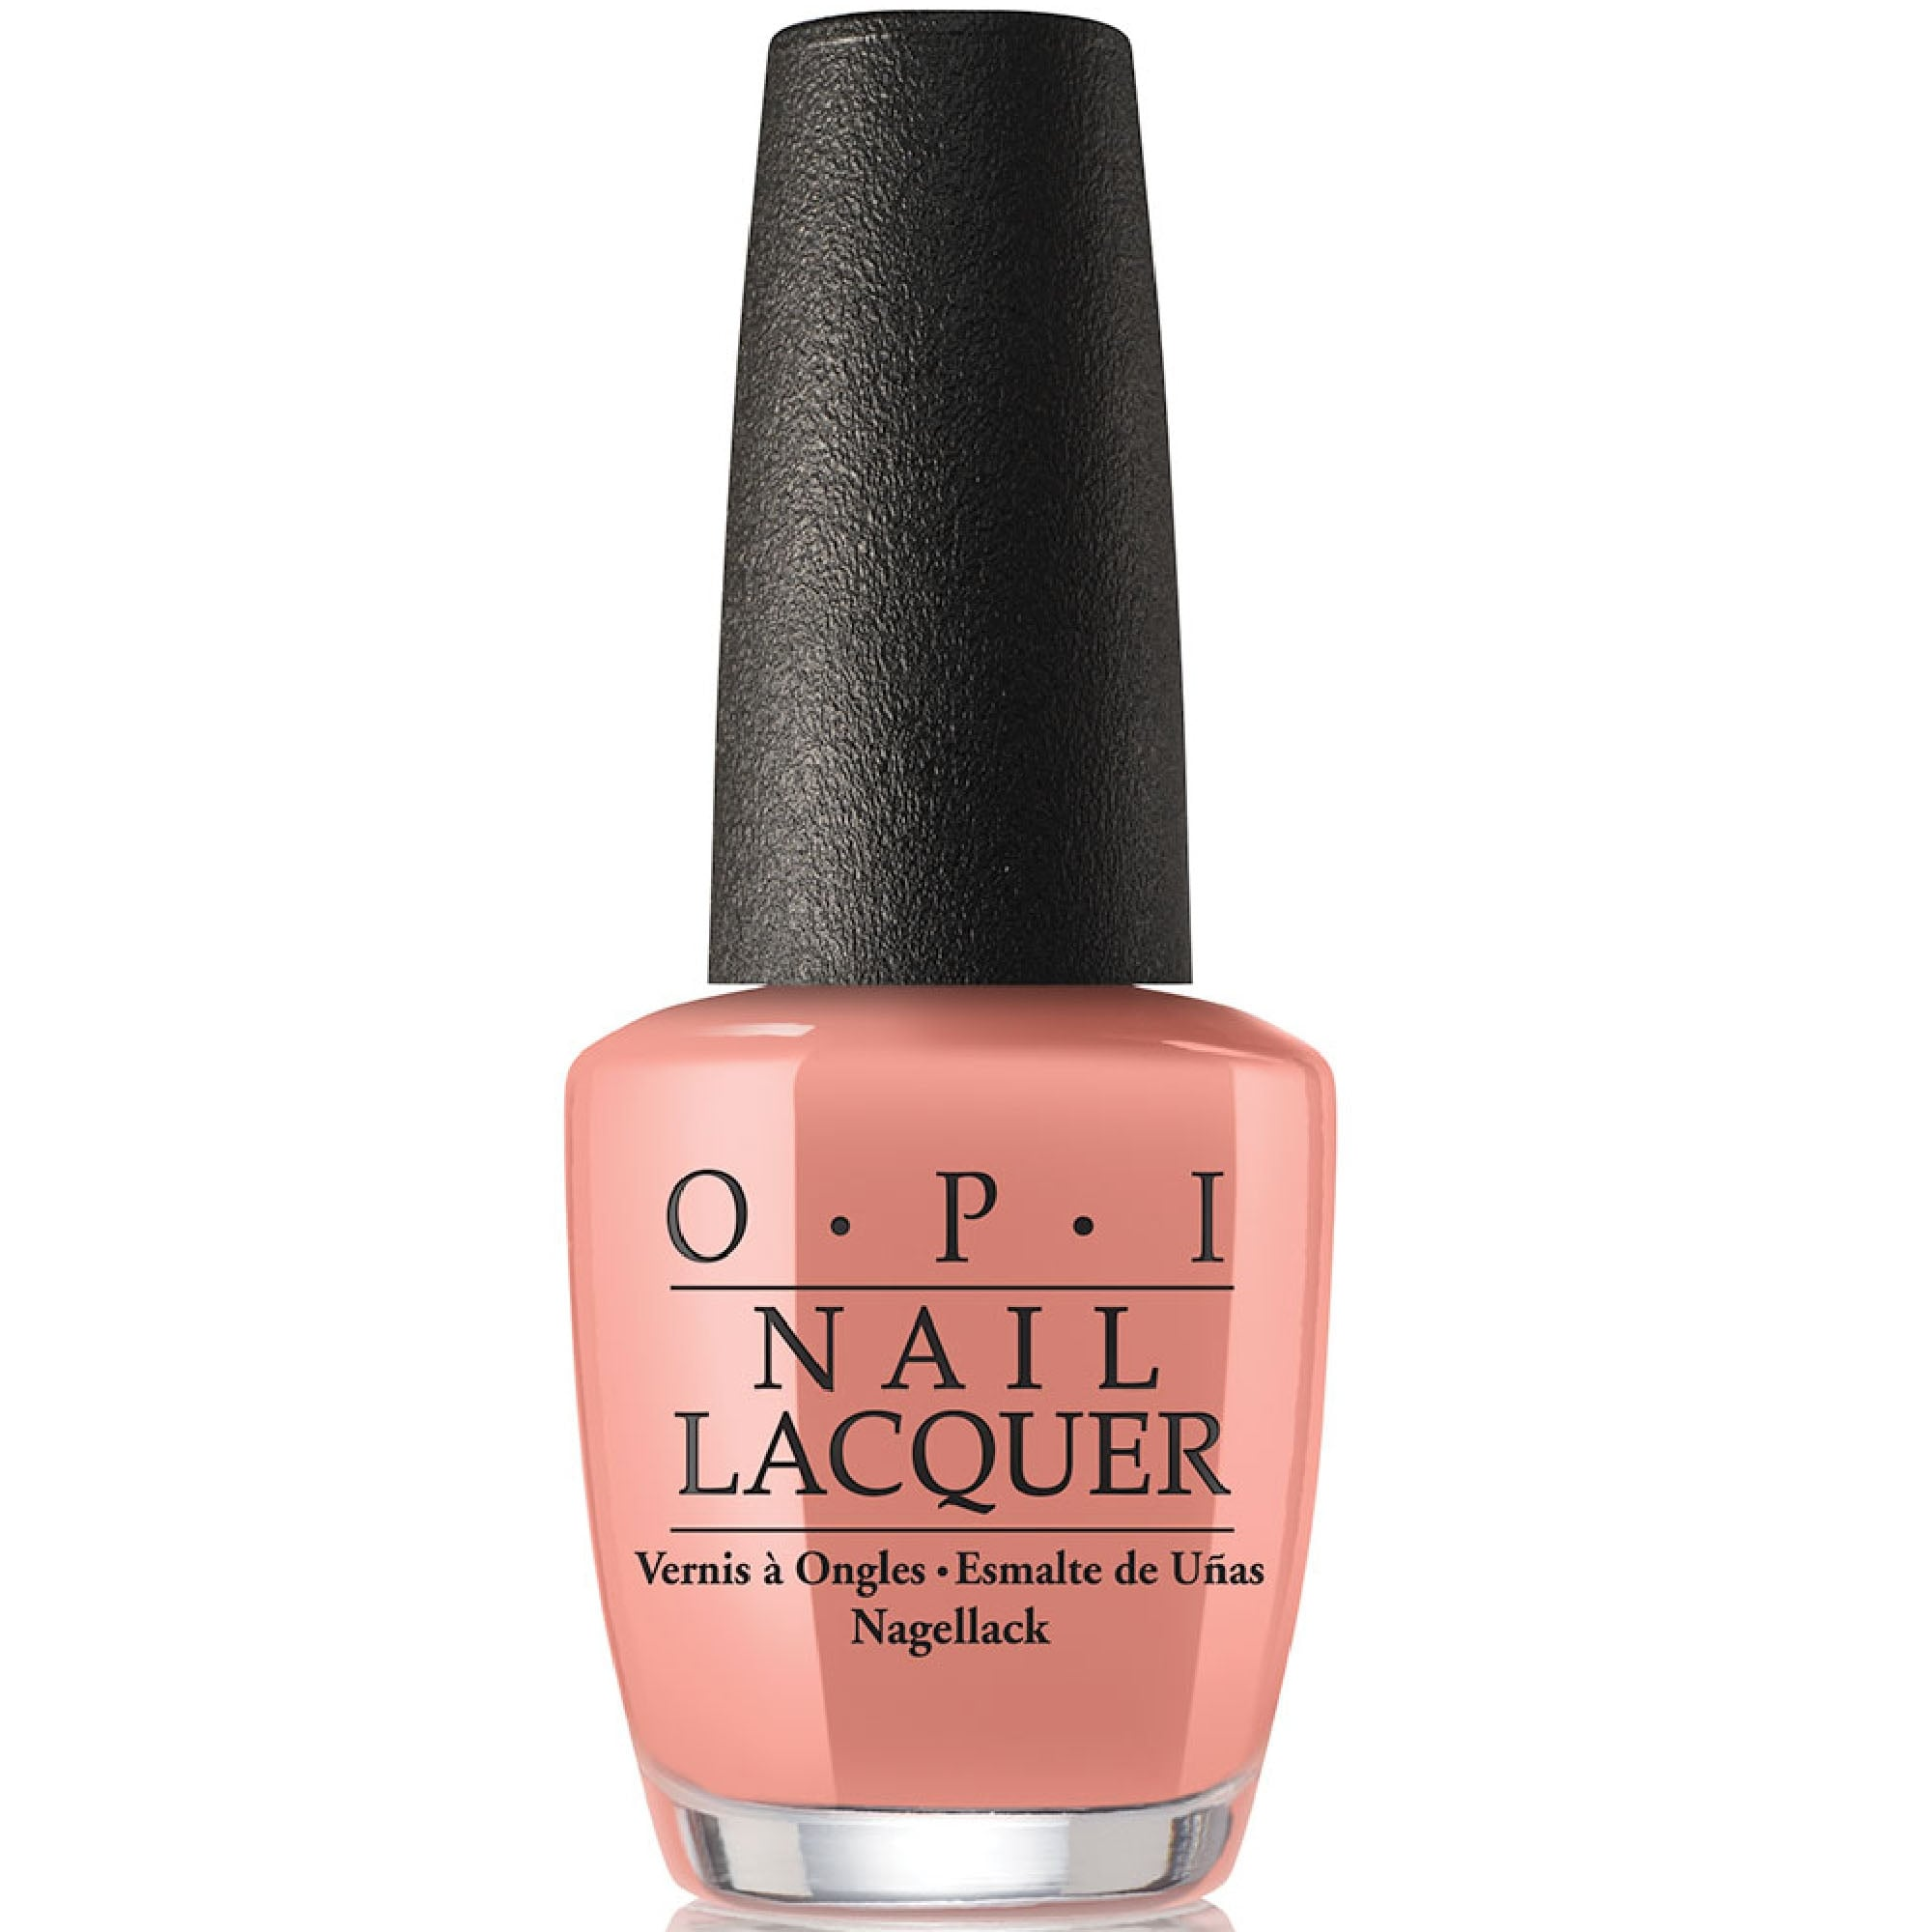 I'll Have a Gin & Tectonic-OPI Nail Lacquer-UK-Wholesaler-Supplier-queenofnailscouk